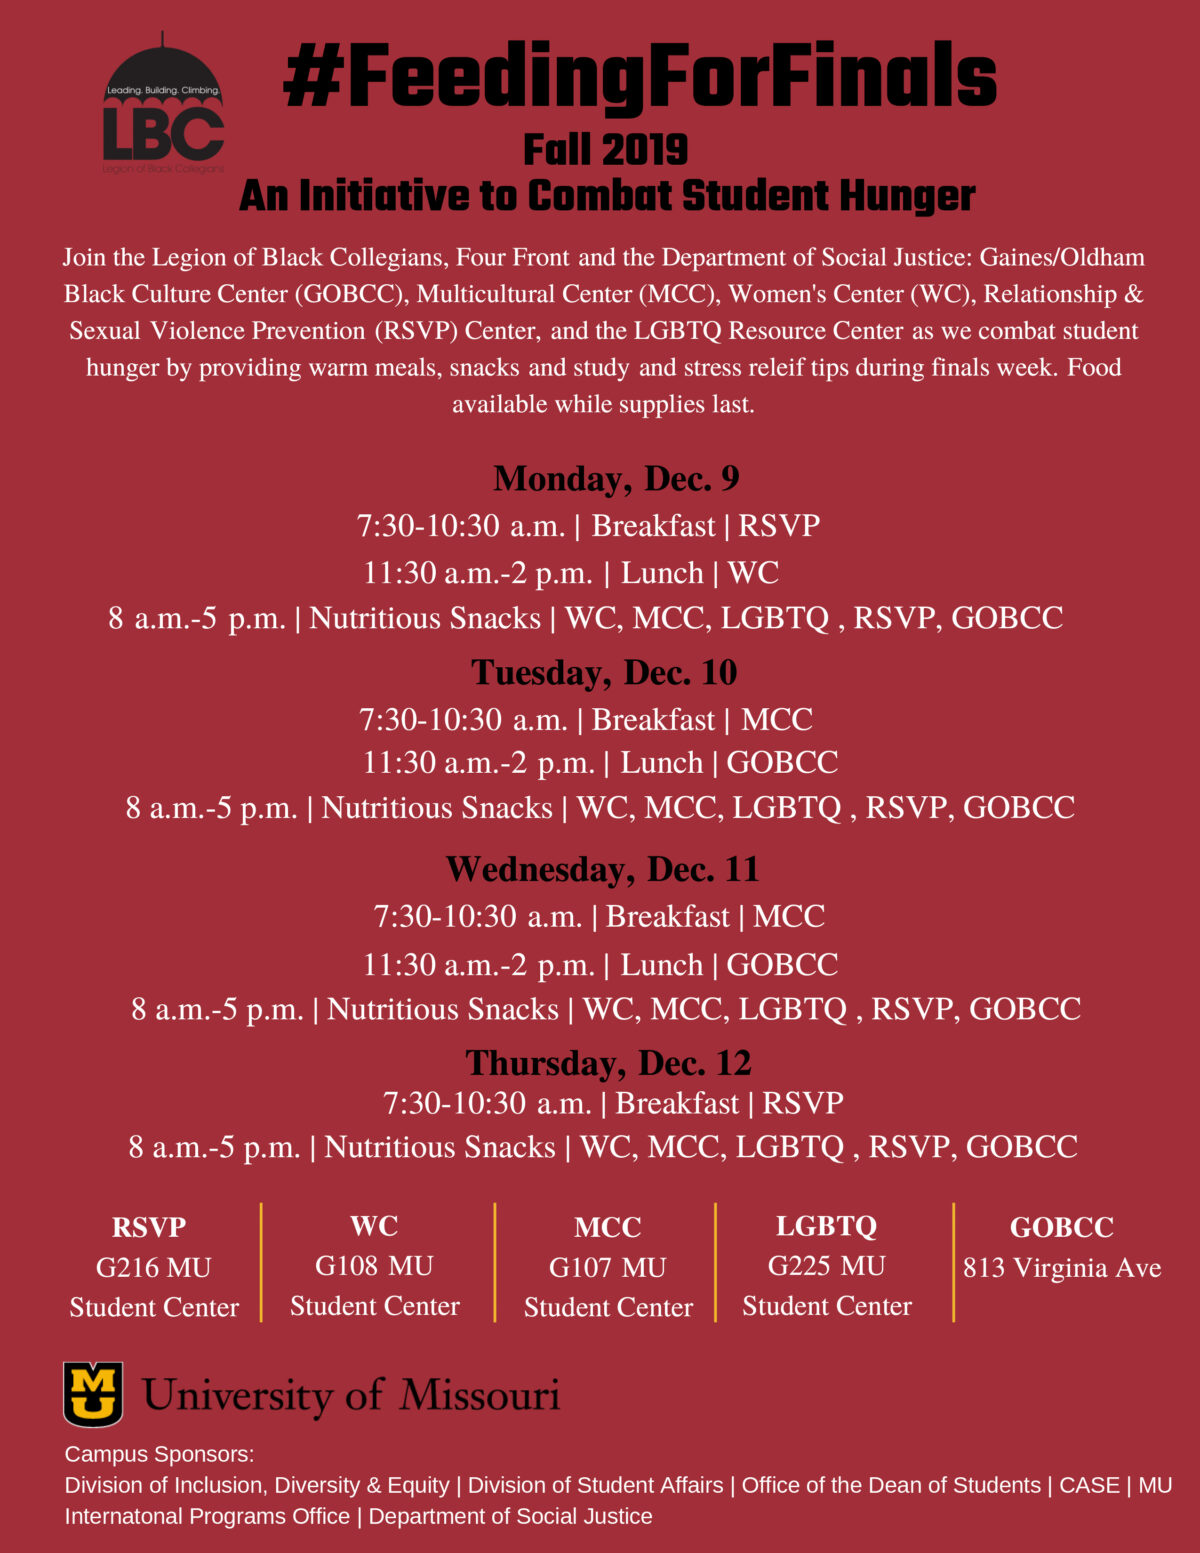 Red #FeedingForFinals event flyer. All text in post text.